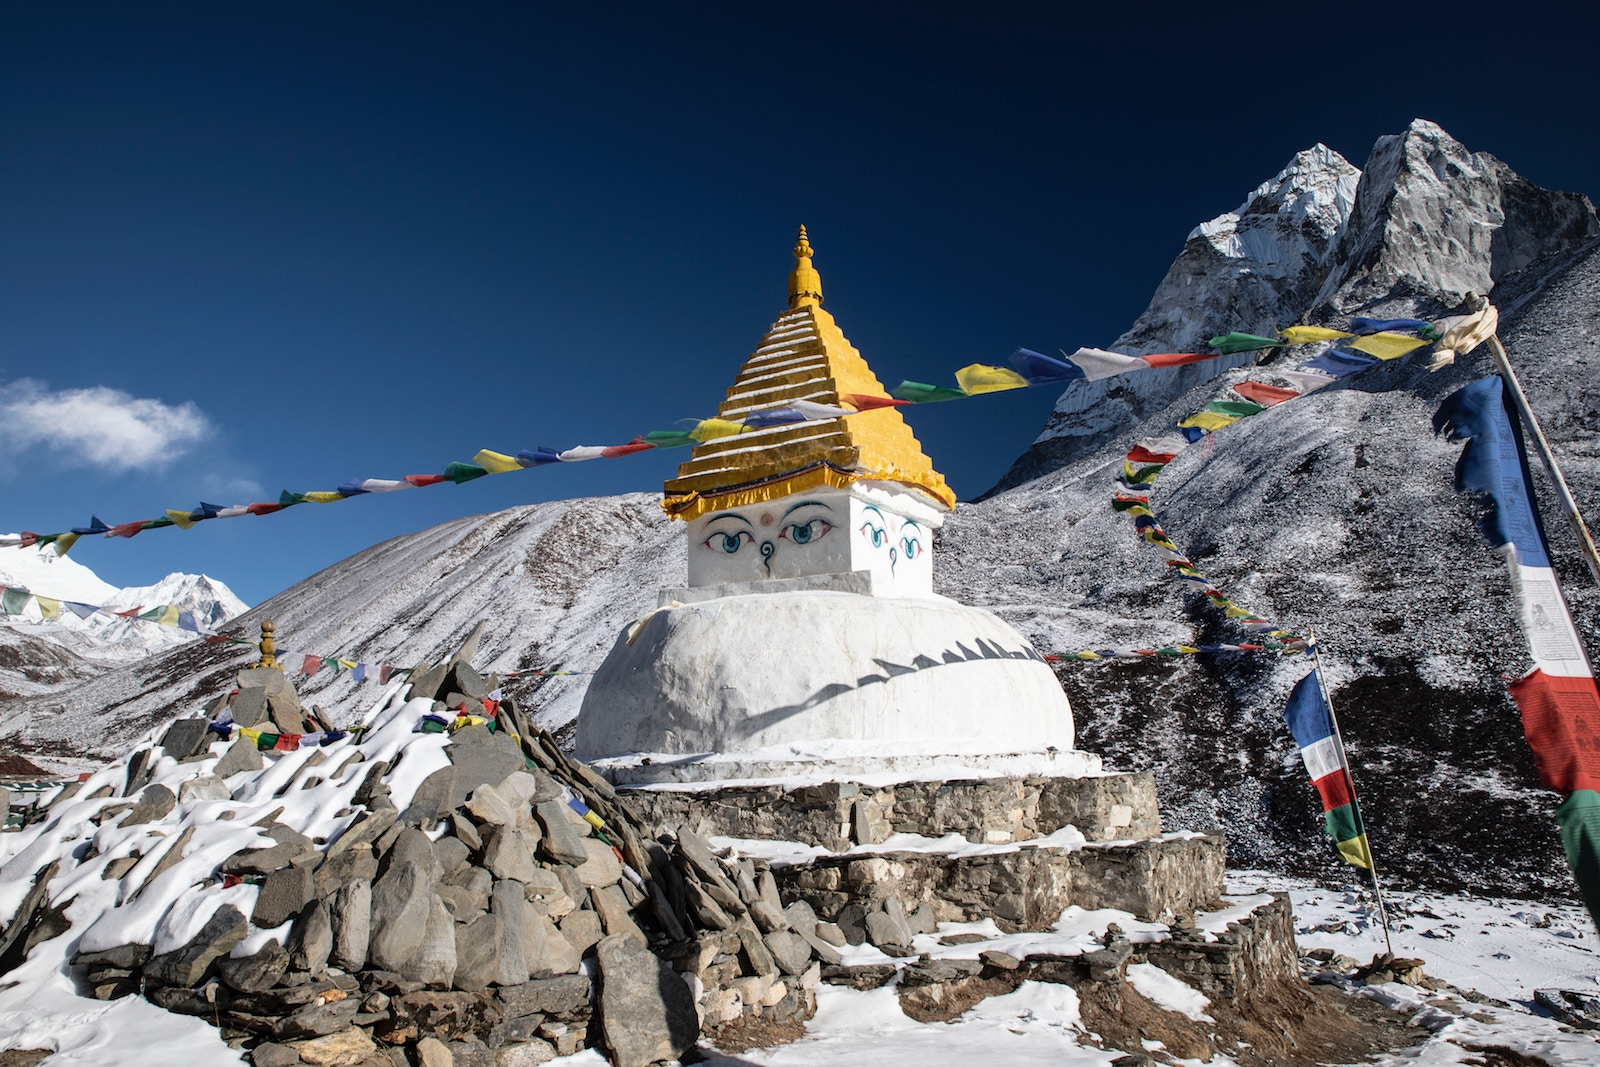 Dingboche - trekking Everest Base Camp